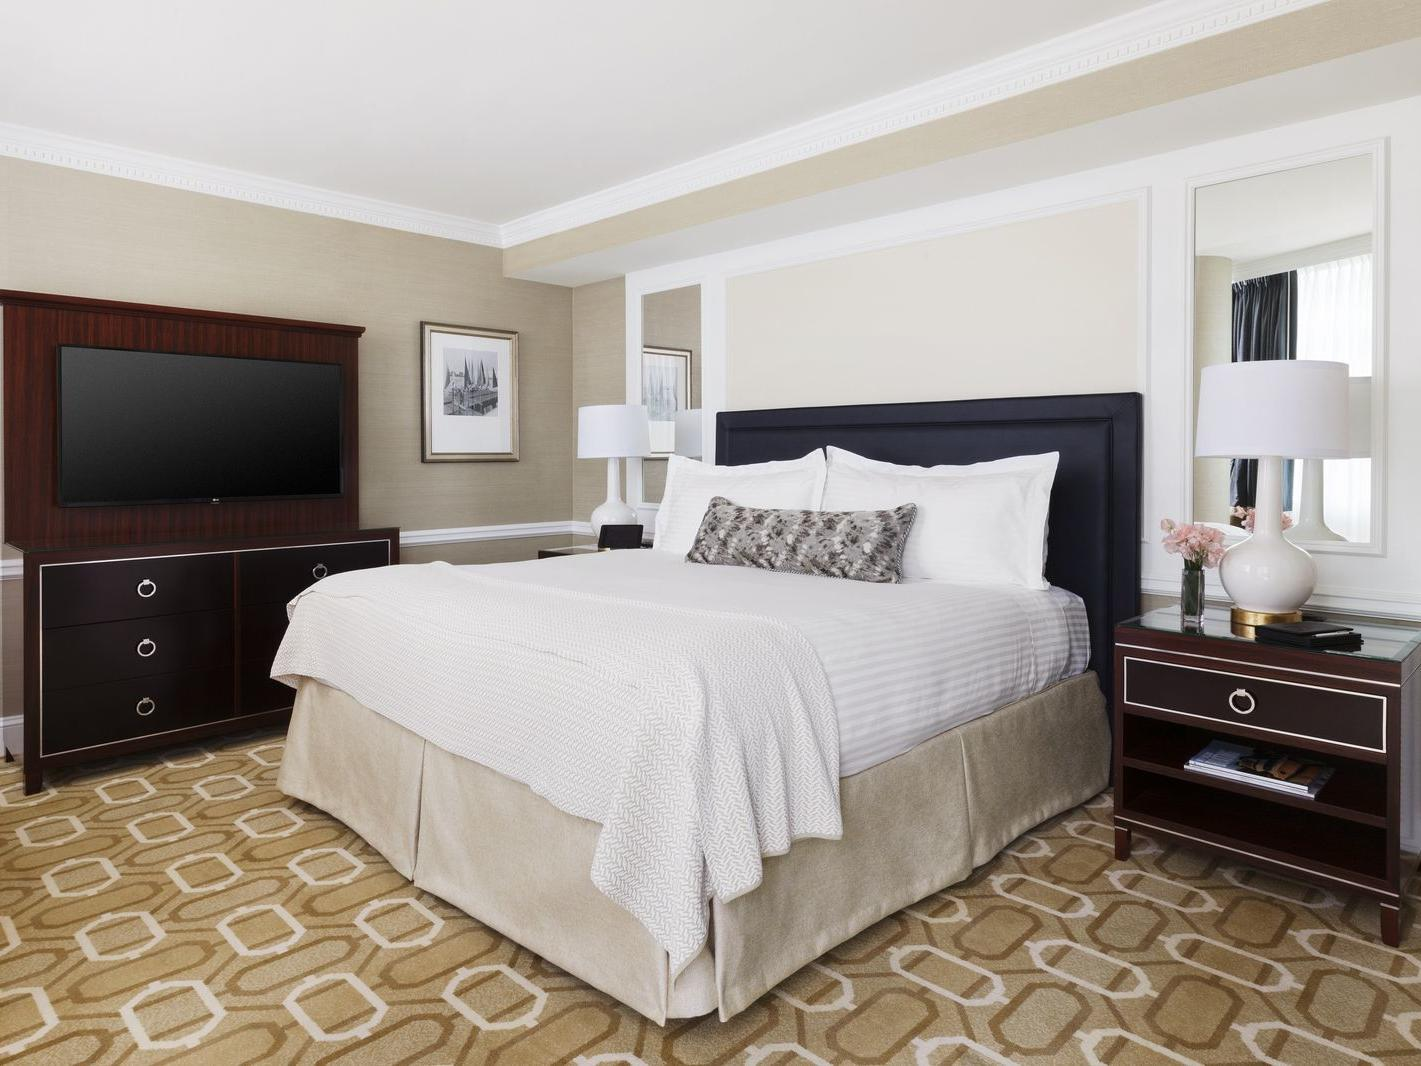 King bed with wall mounted TV above dresser